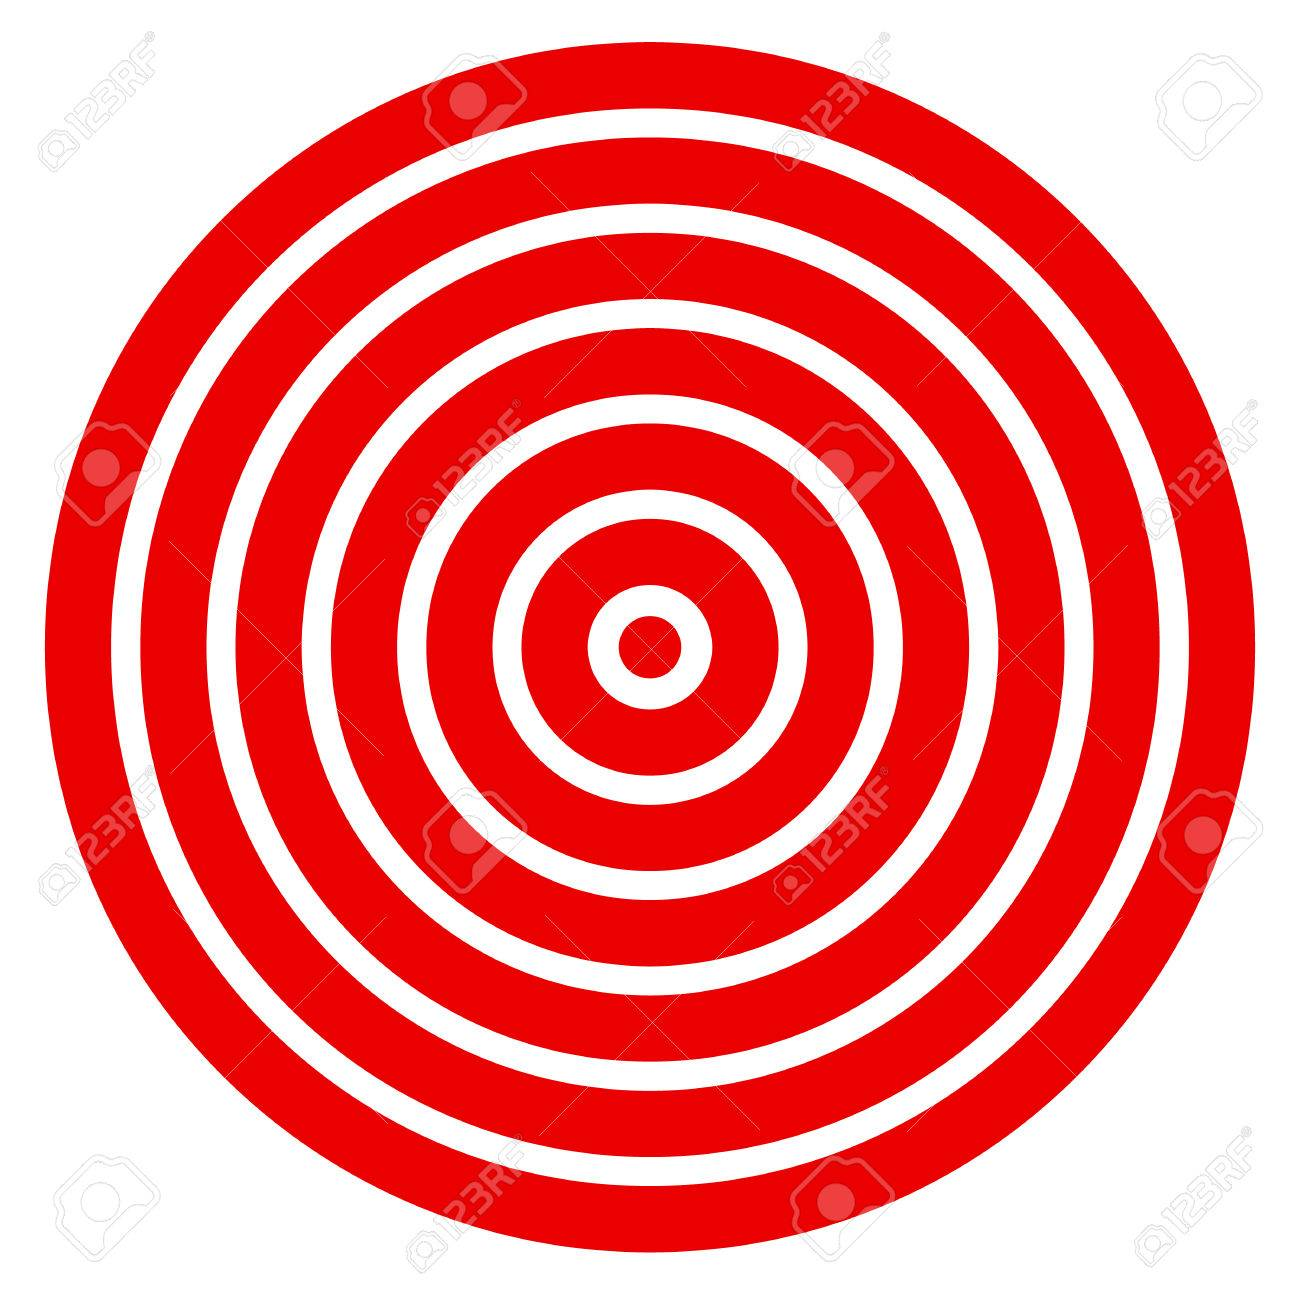 picture relating to Printable Bullseye Target identify Uncomplicated basic in direction of print concentration mark with bullseye